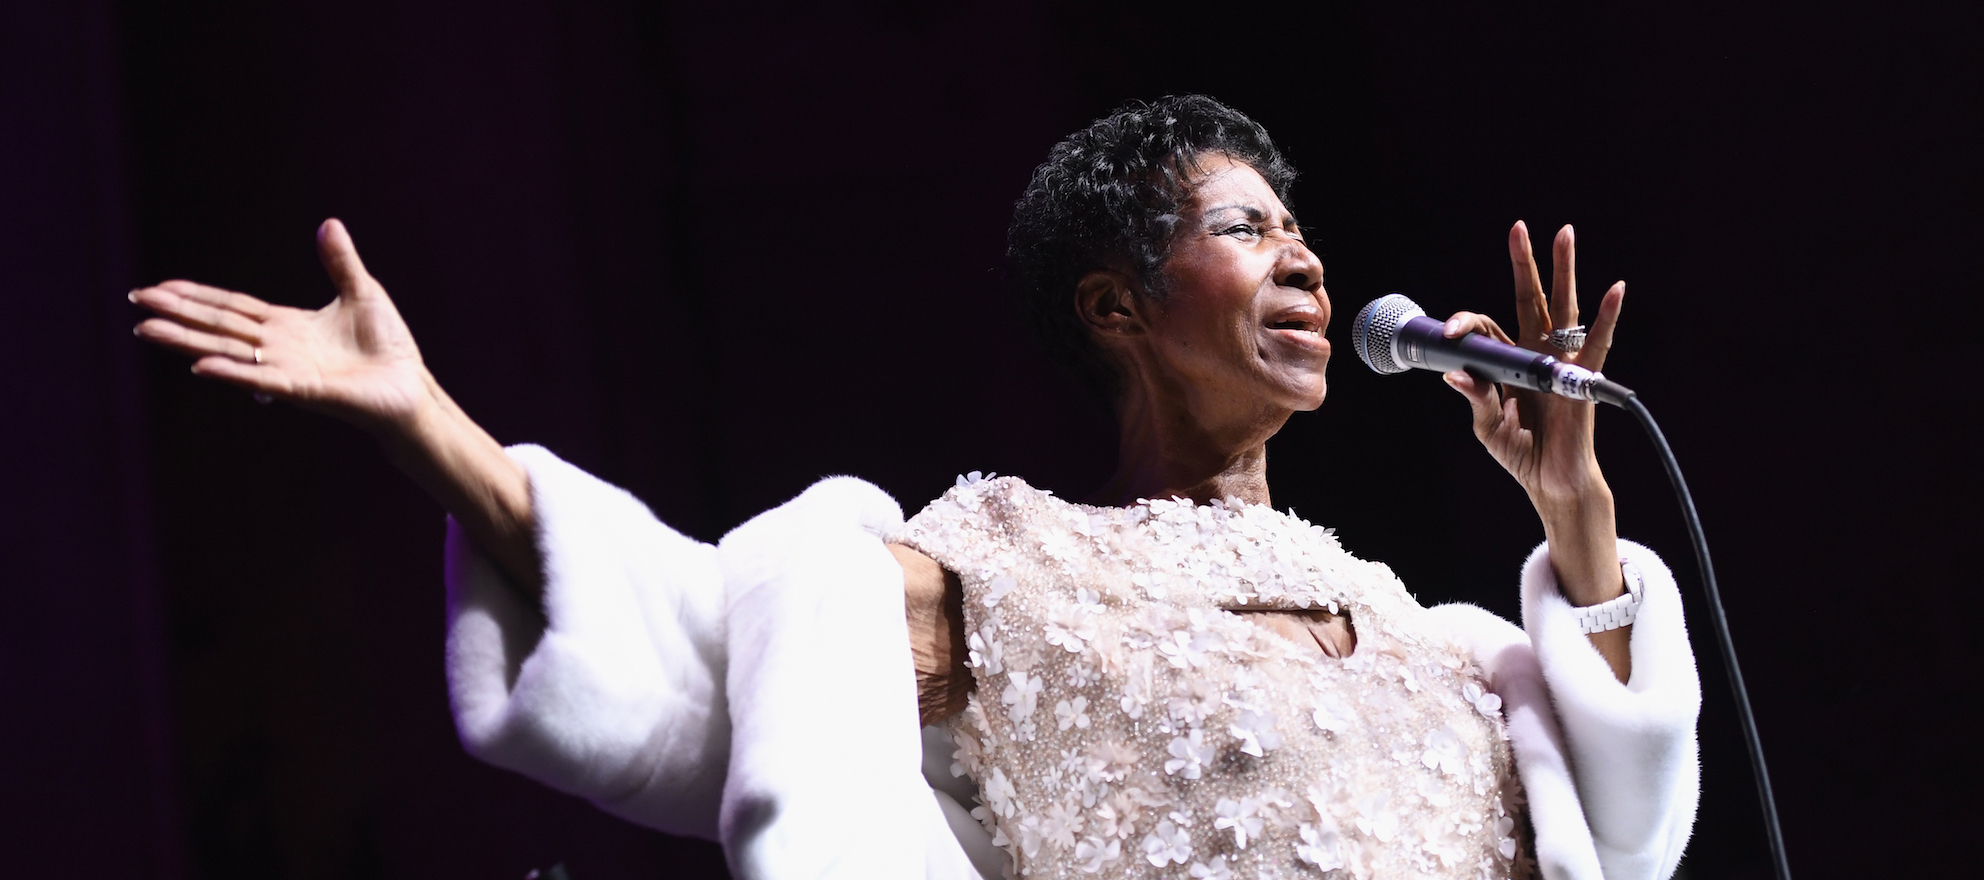 Group aims to renovate, preserve Aretha Franklin's childhood home